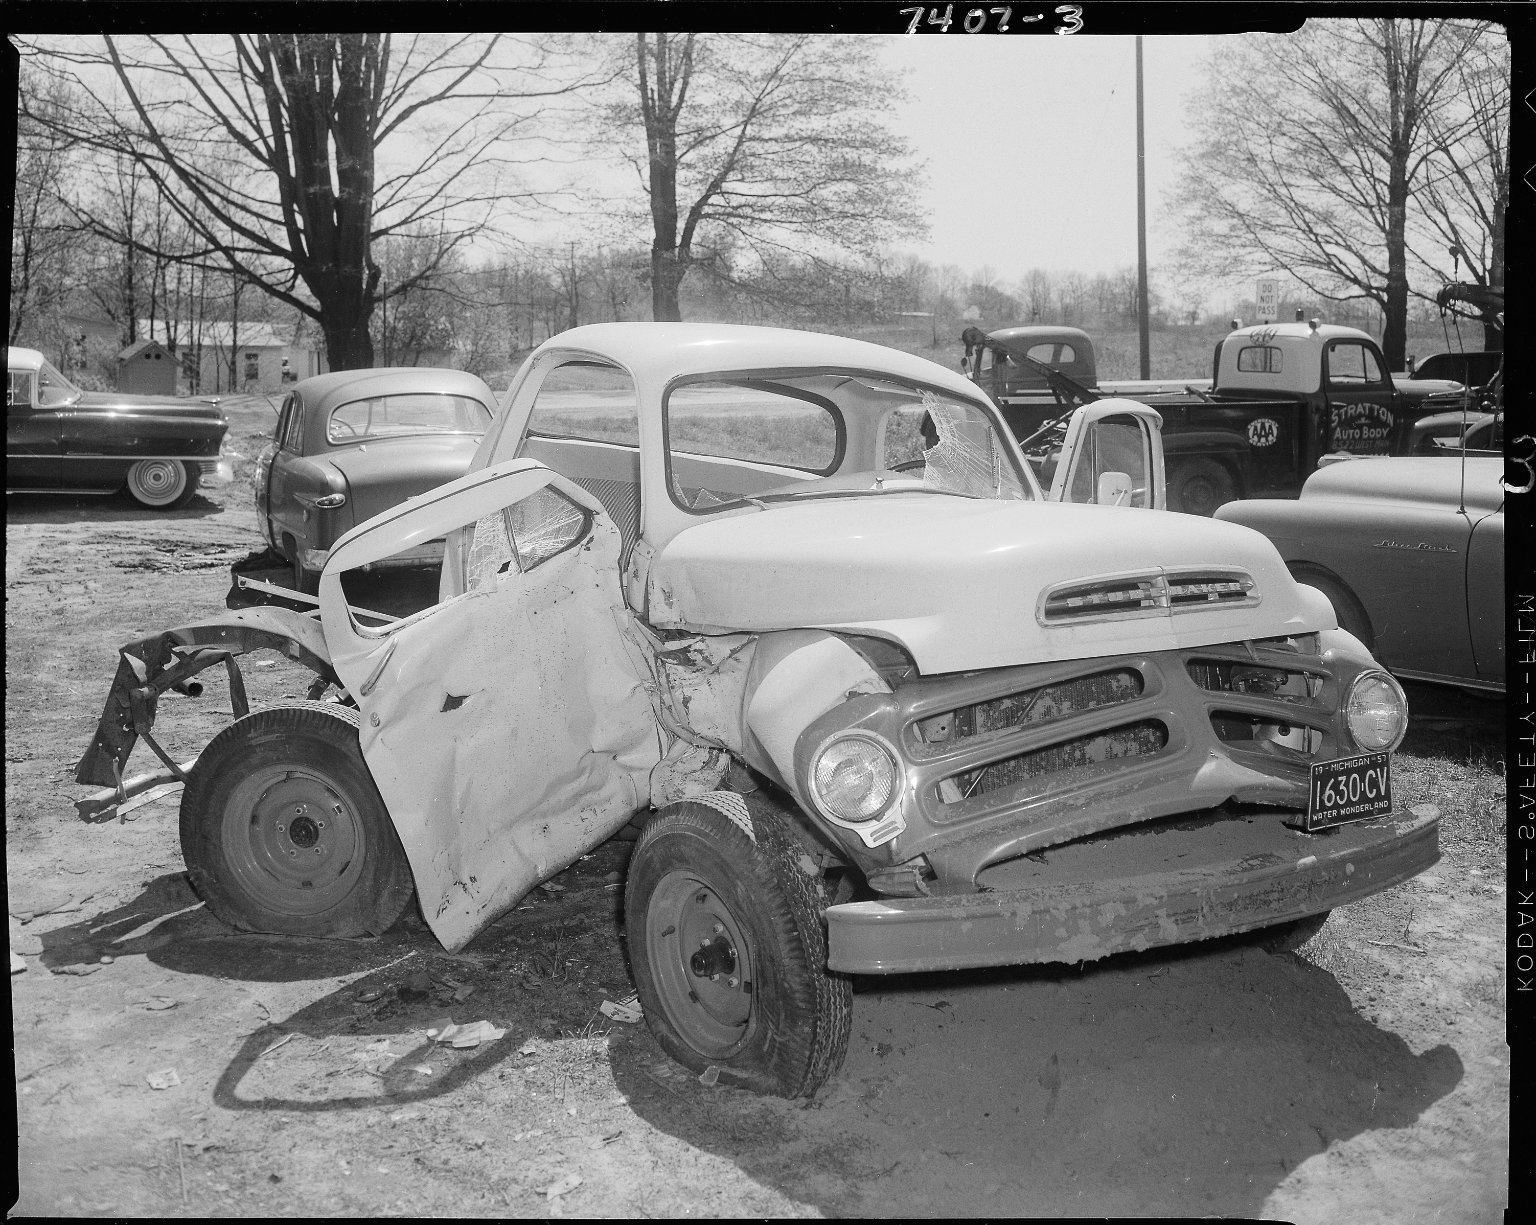 Studebaker pick-up truck, wrecked